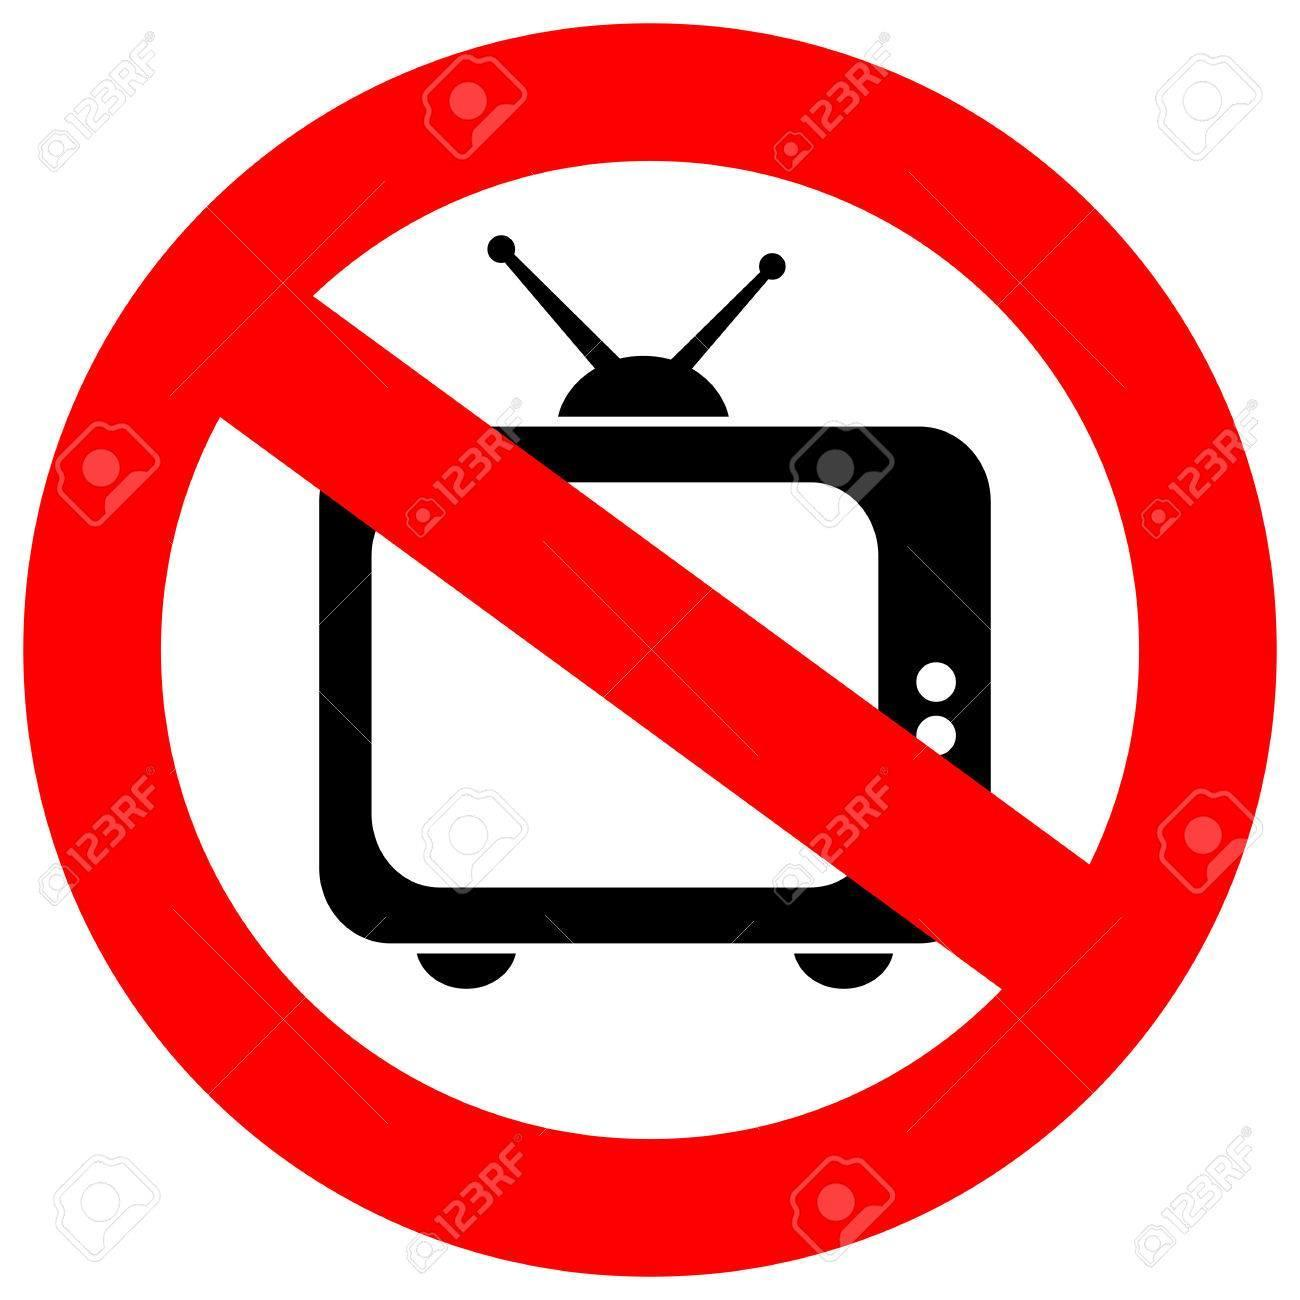 Live without TV